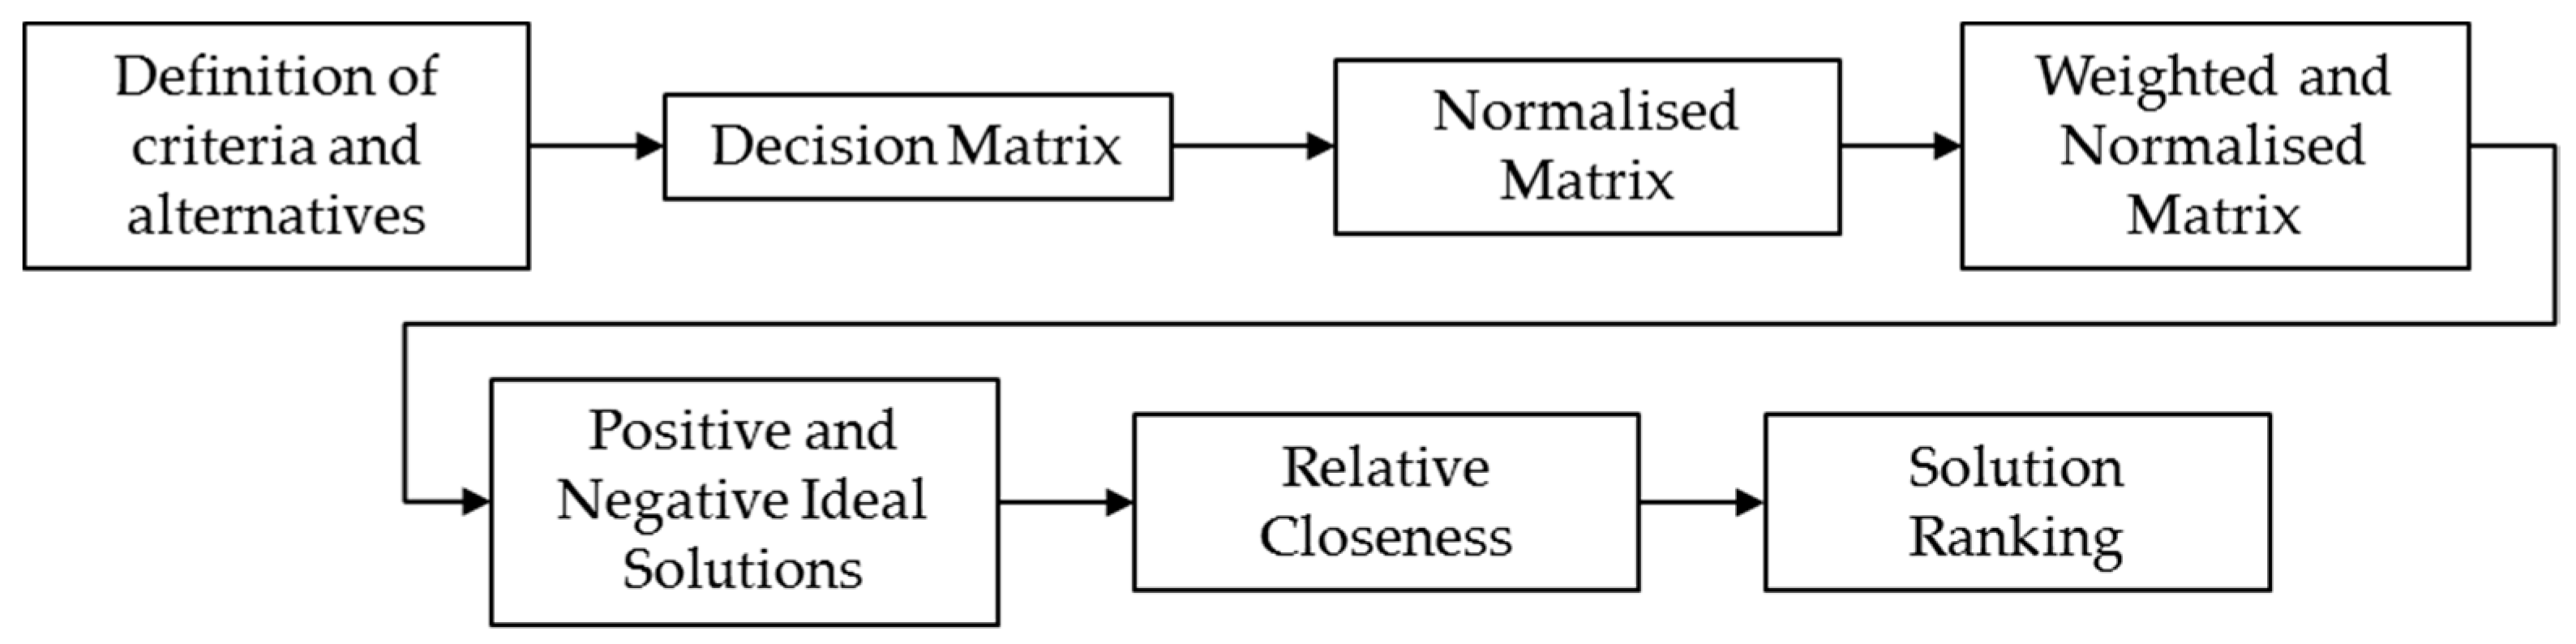 decision criteria and alternative soloutions A good decision analysis chapter 4 asw/qmb-ch04 3/8/01 10:35 am page 96 sociated with each decision alternative and each state of nature.